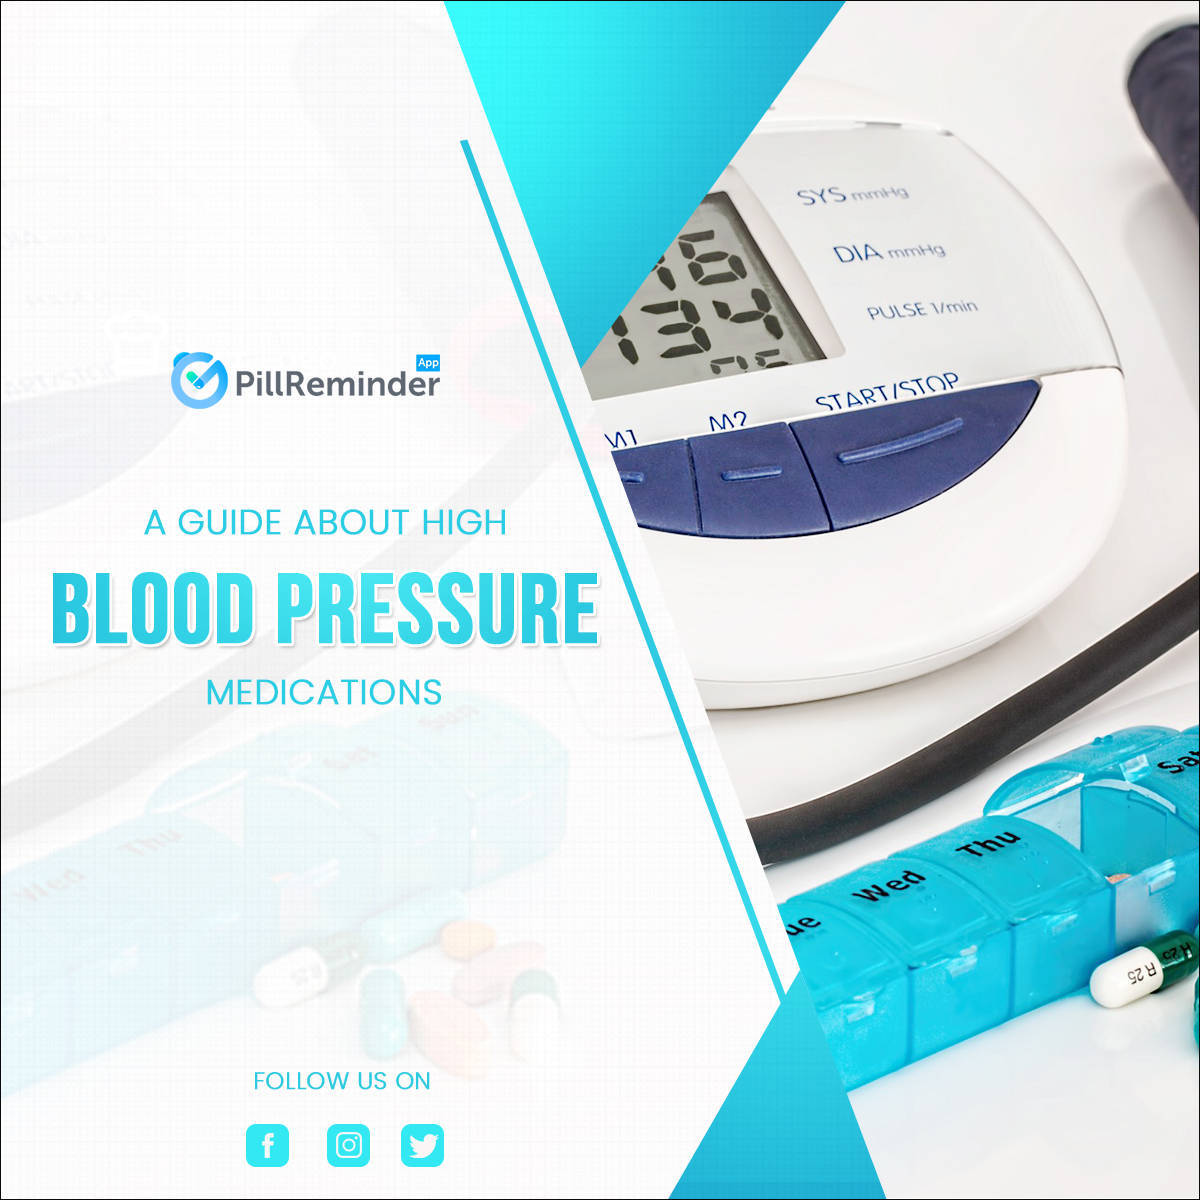 A Guide About High Blood Pressure Medications